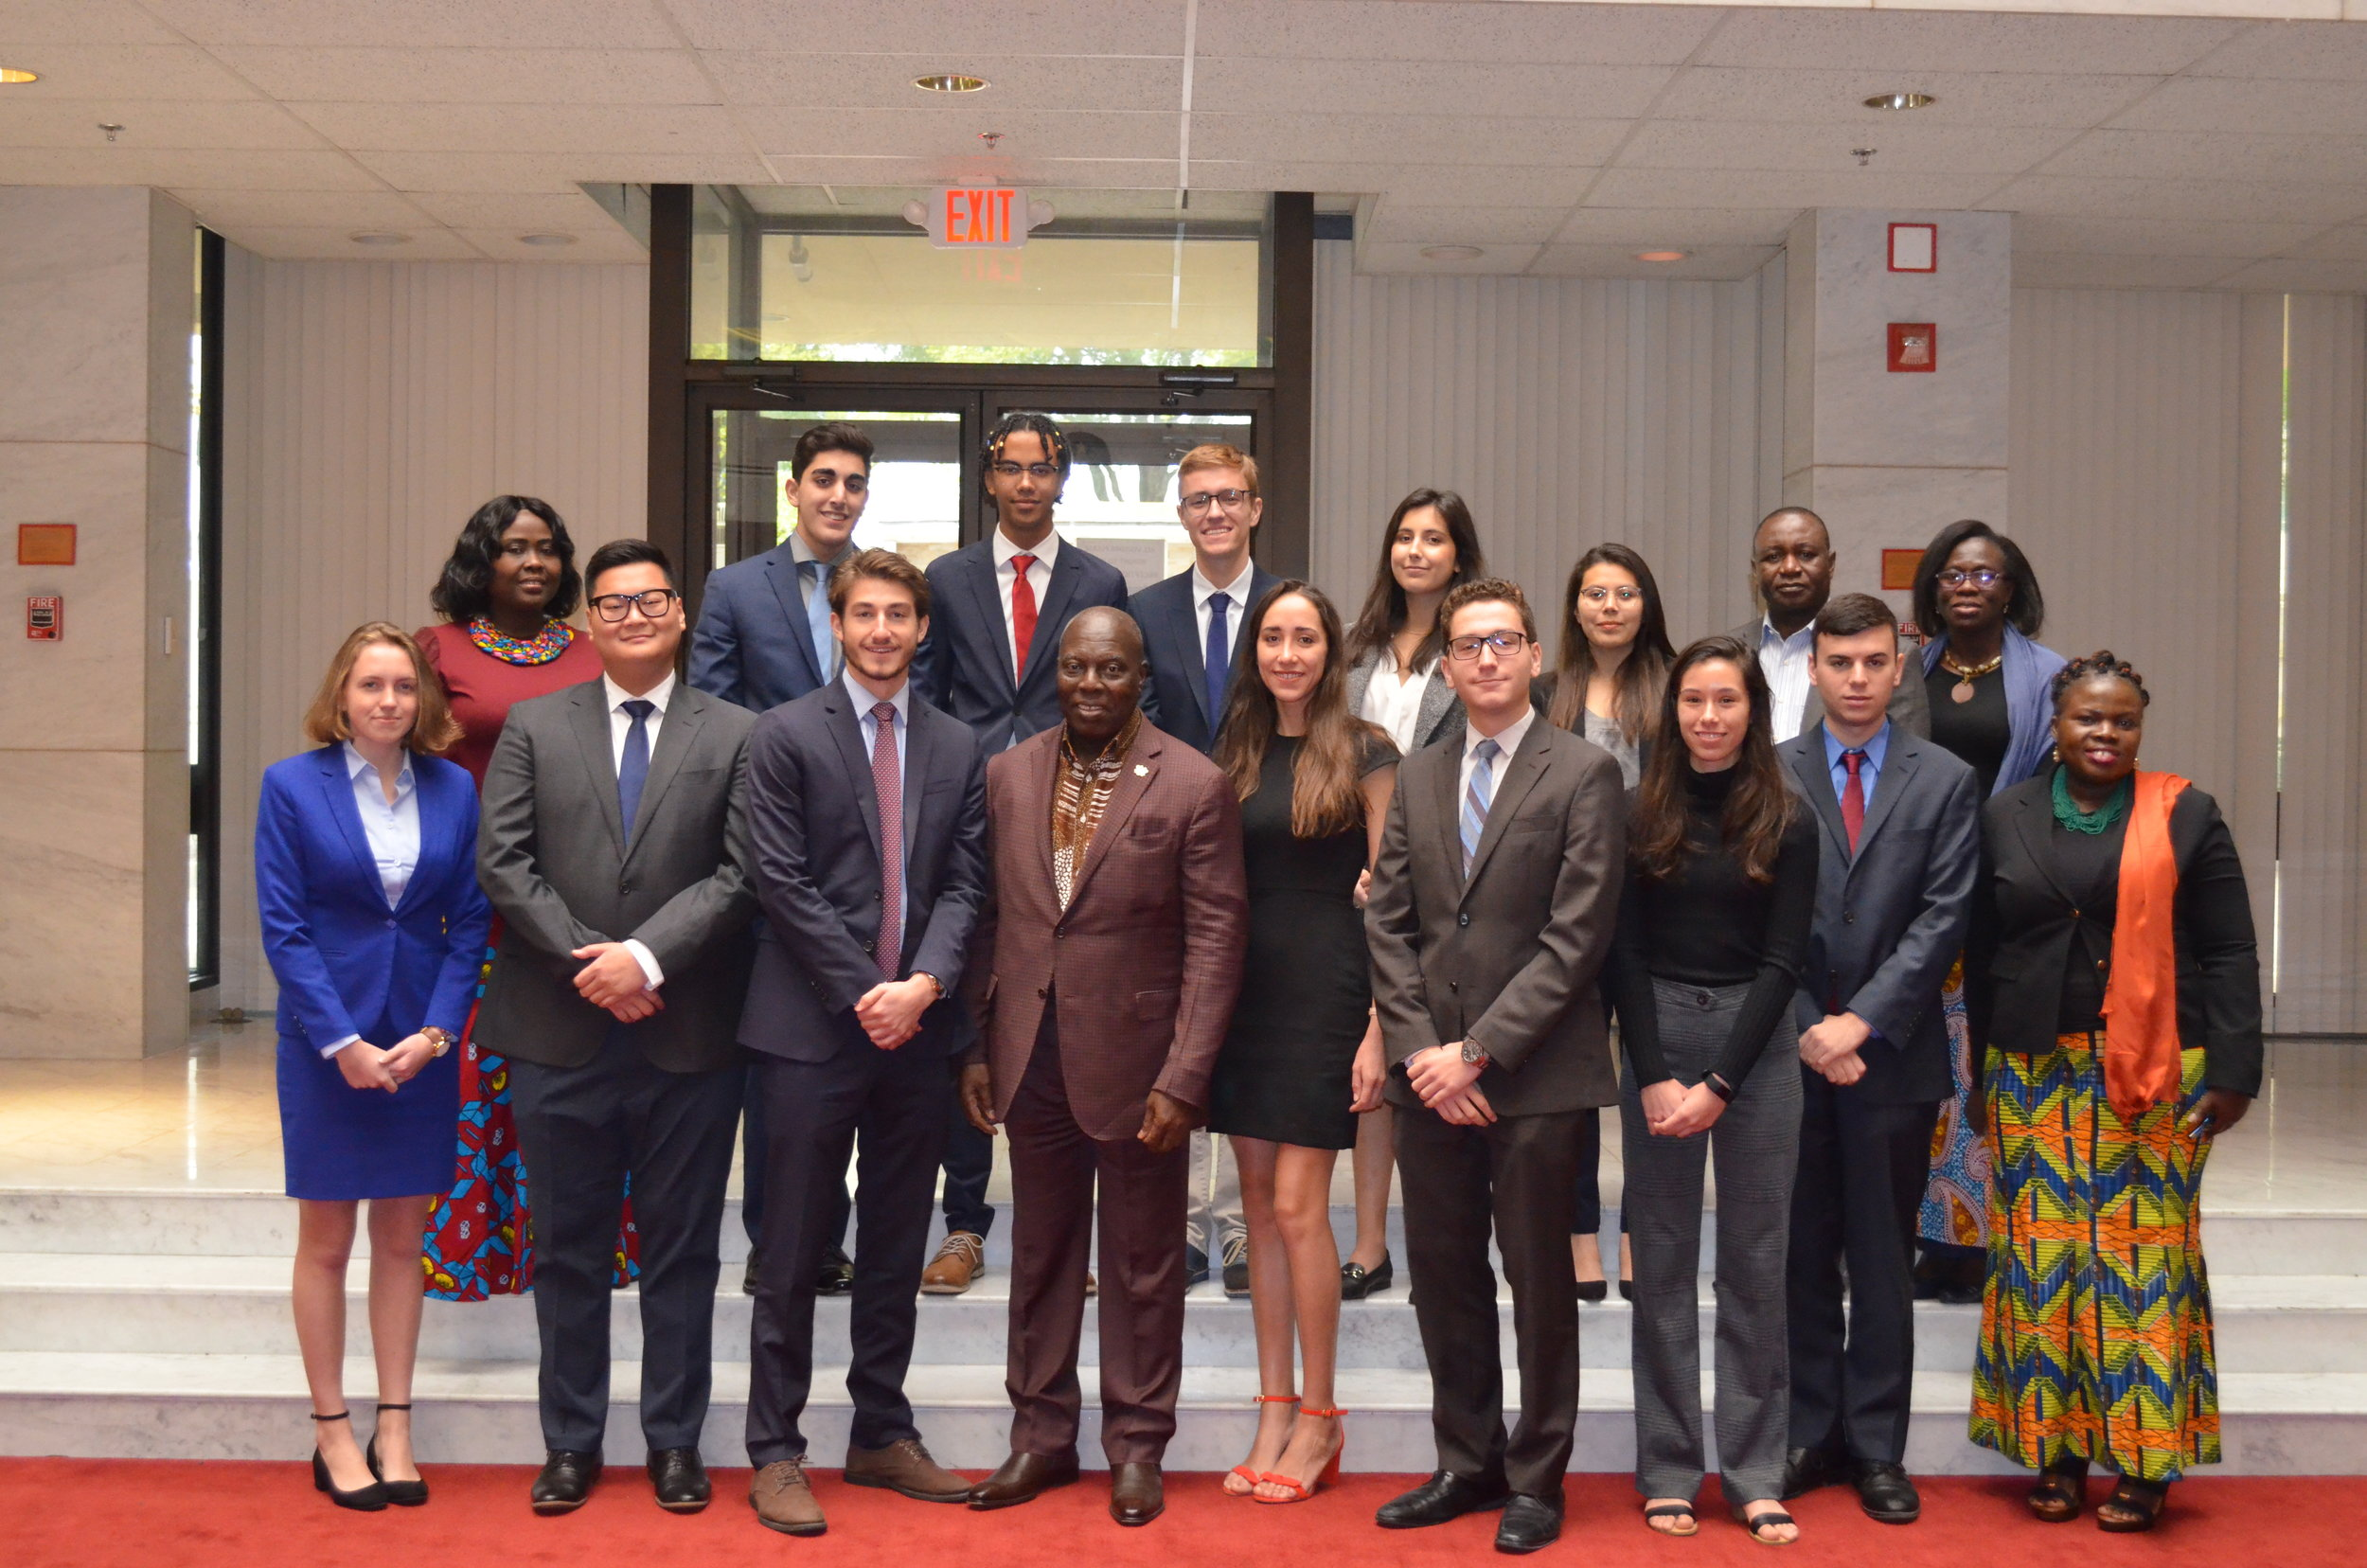 Student Diplomats team conducts roundtable discussion at the Embassy of Ghana with Ambassador Adjei-Barwuah